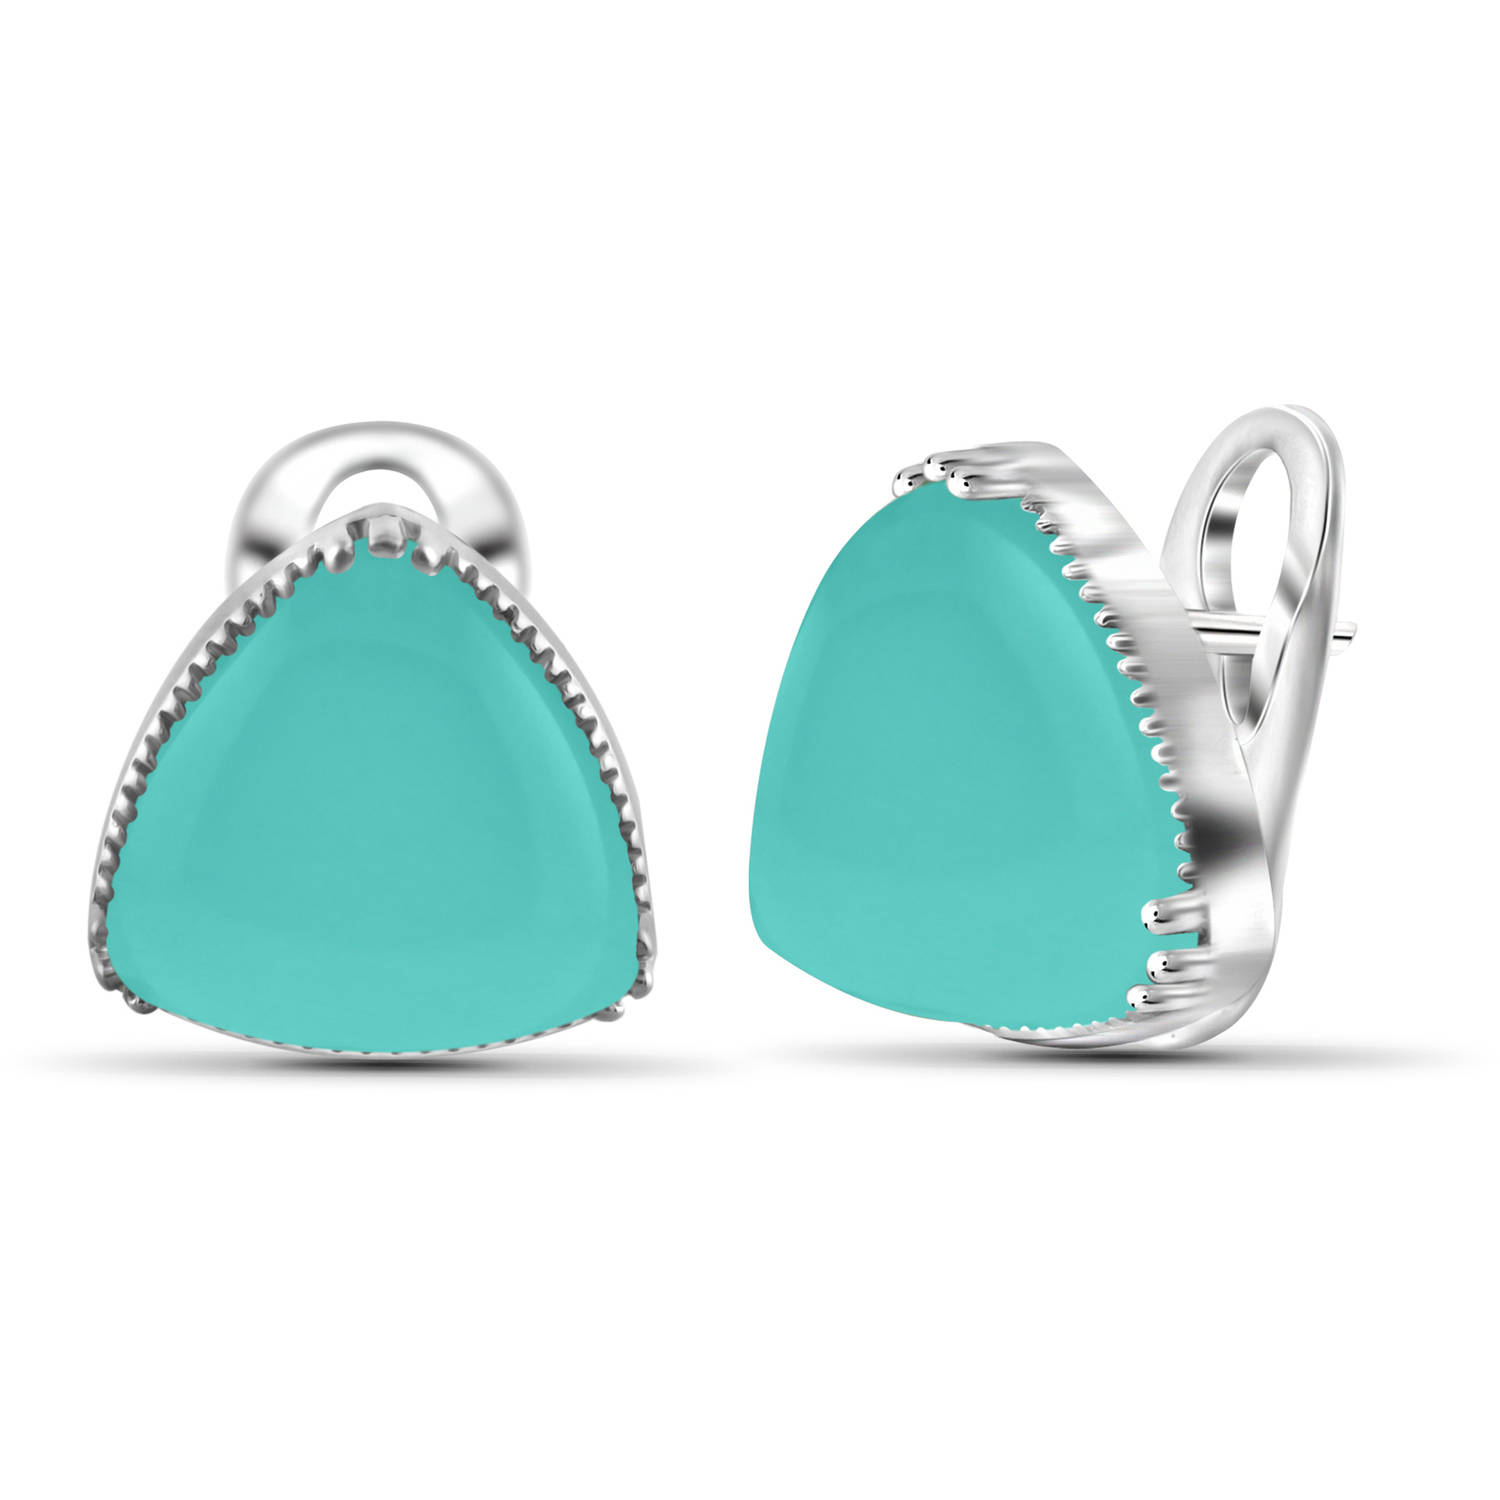 JewelersClub 17-1 2 Carat T.G.W. Chalcedony Sterling Silver Stud Earrings by JewelersClub